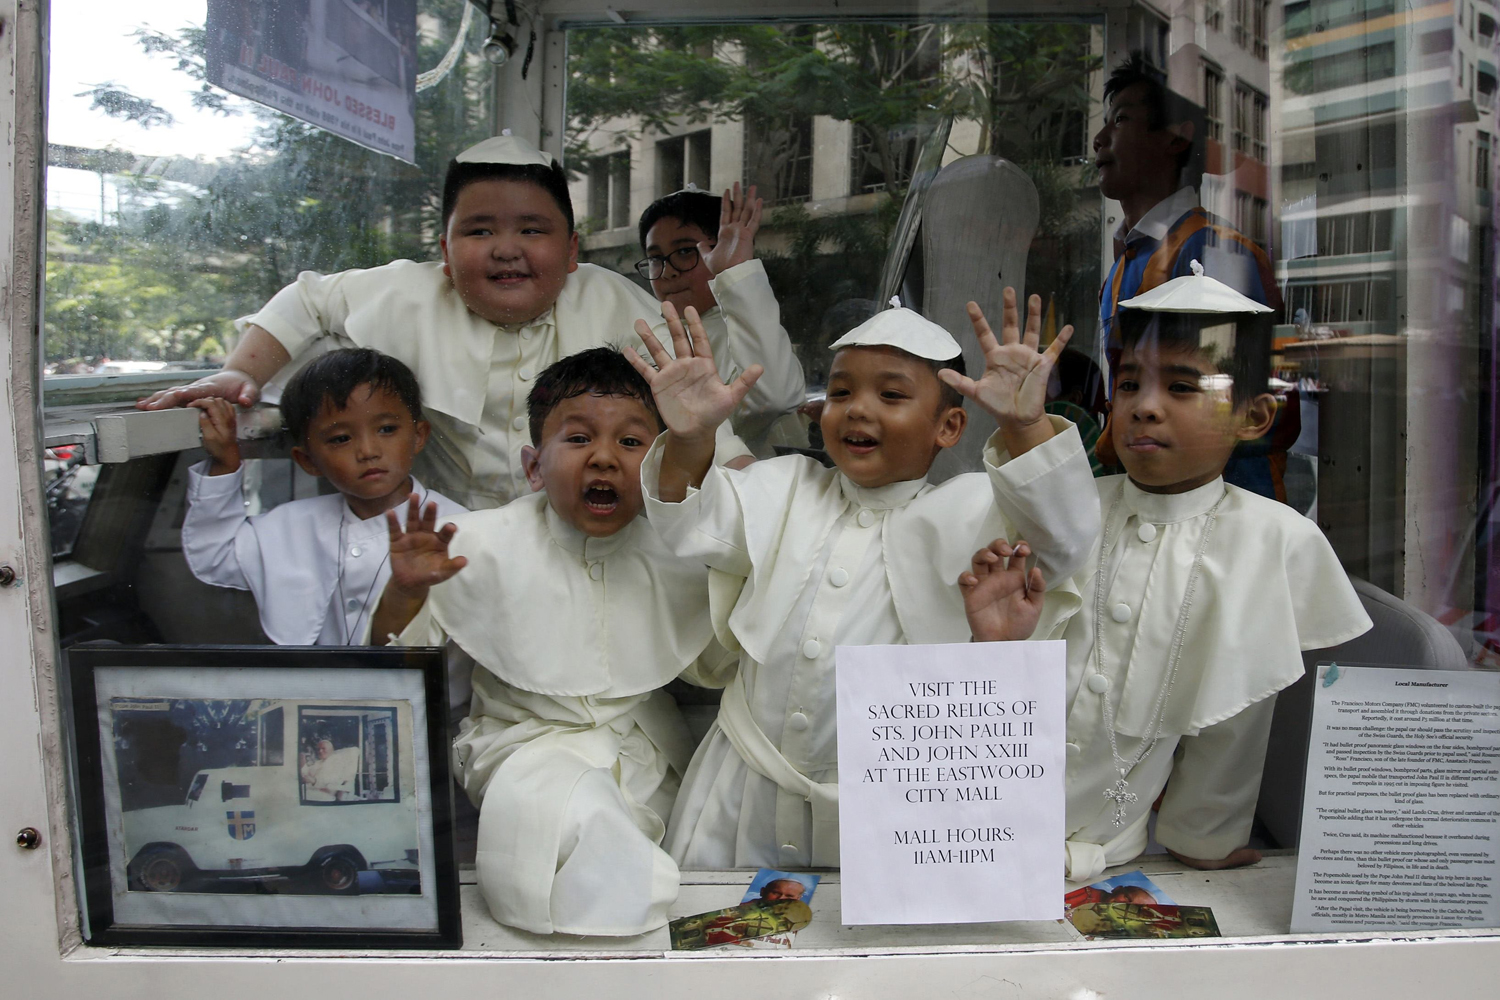 Children wearing Pope's cassocks ride a Popemobile that was used by Pope John Paul II in his 1995 visit to Manila, during a parade in Quezon city, Metro Manila on April 27, 2014.